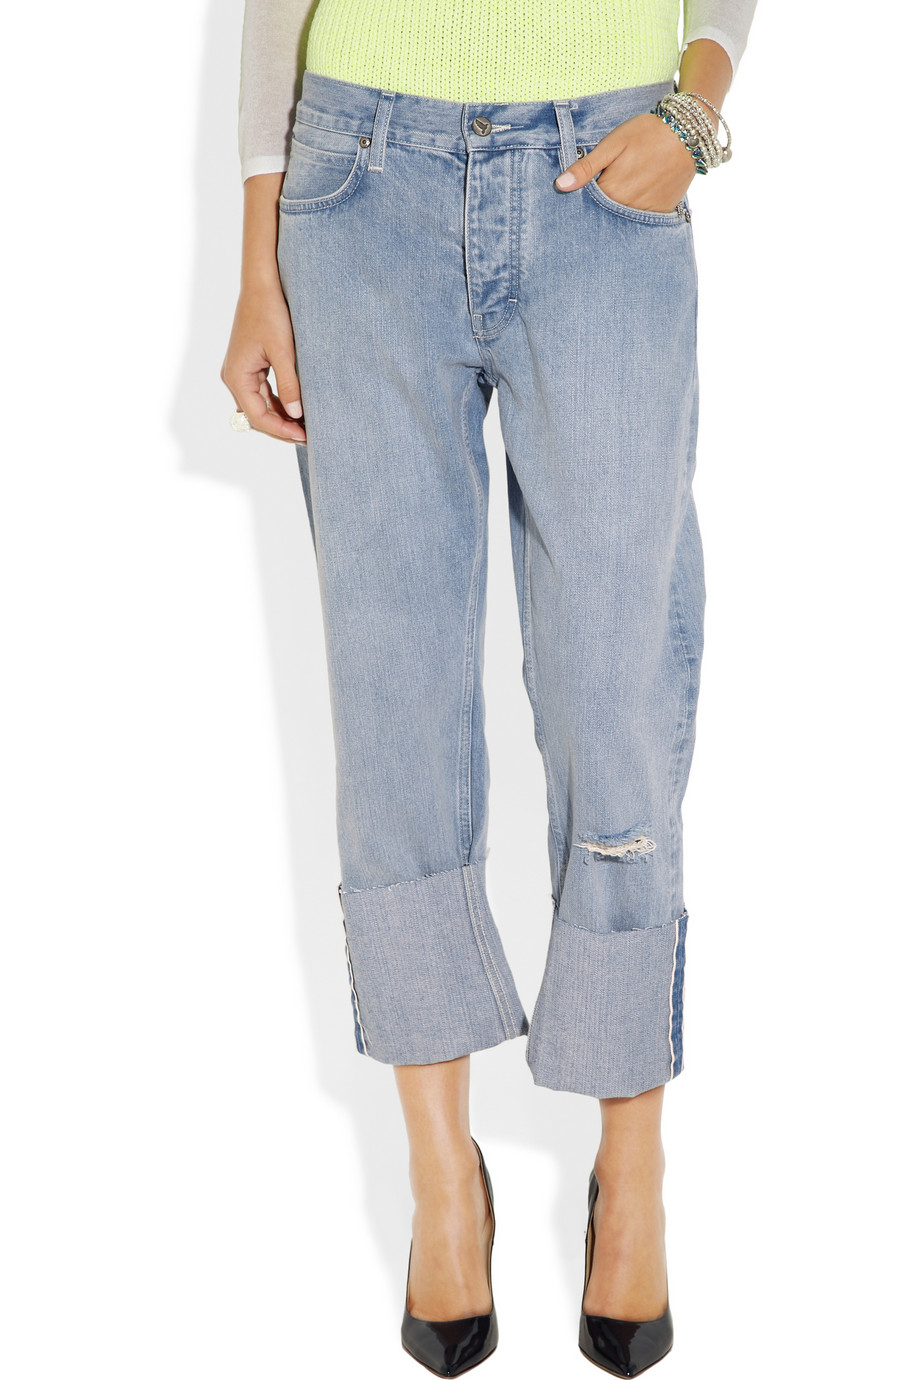 MiH Jeans Phoebe mid-rise boyfriend jeans – 55% at THE OUTNET.COM